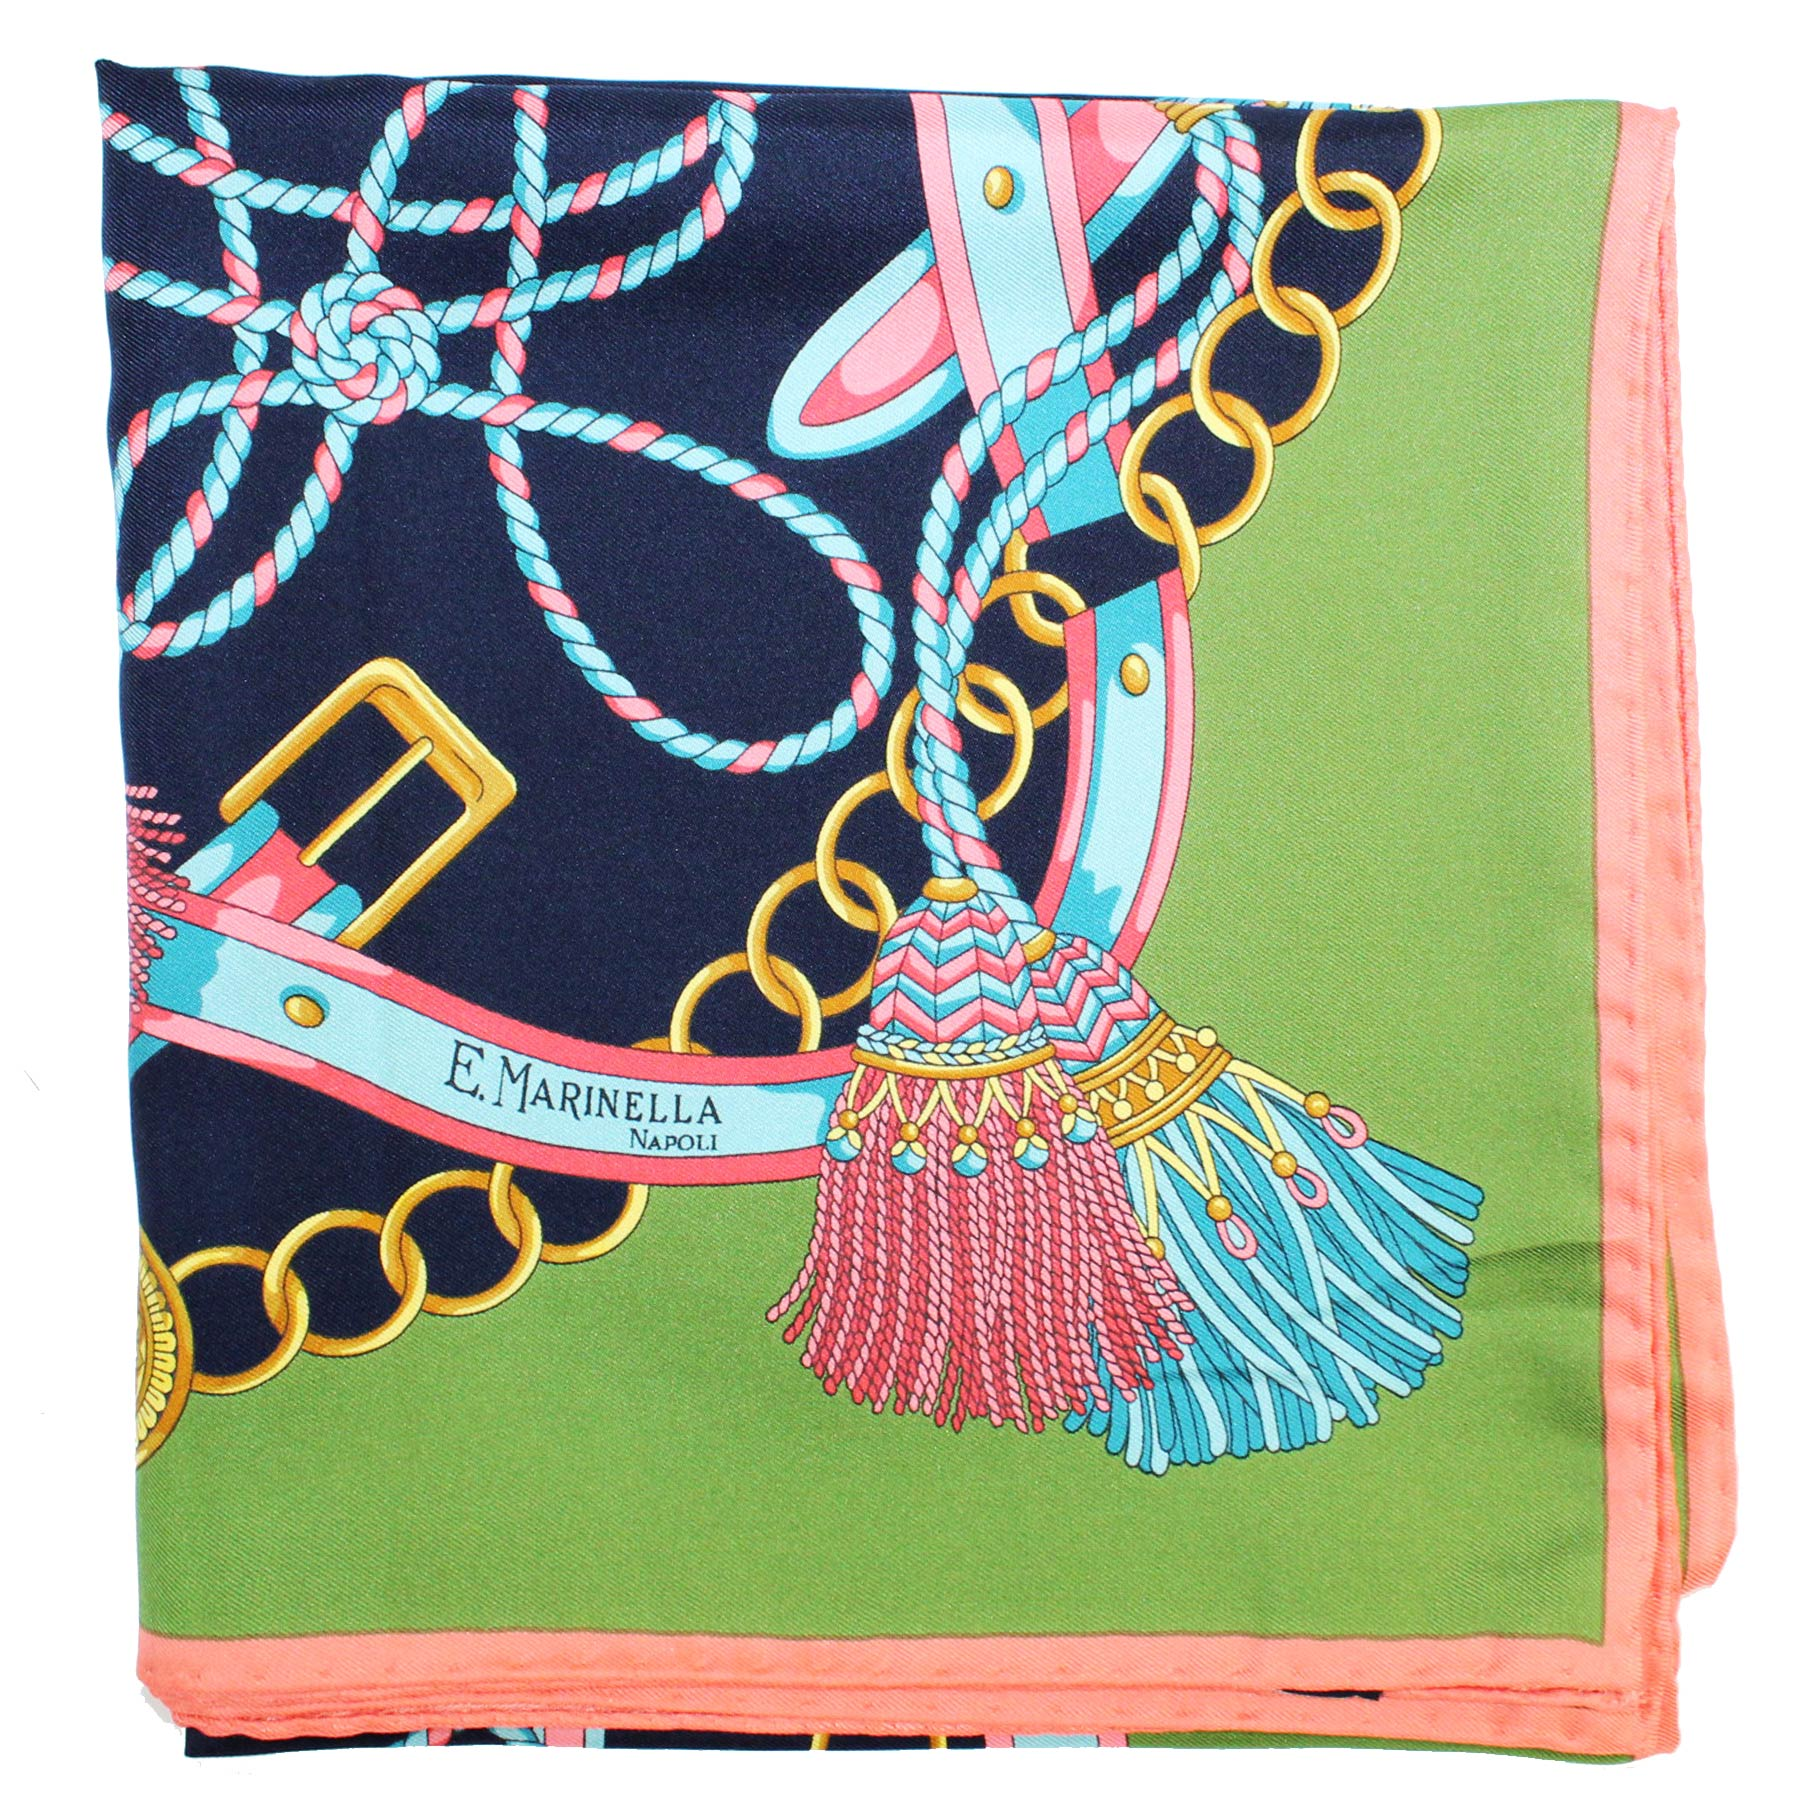 E. Marinella Scarf Navy Green Pink Belts & Tassel Design - Large Twill Silk Square Foulard